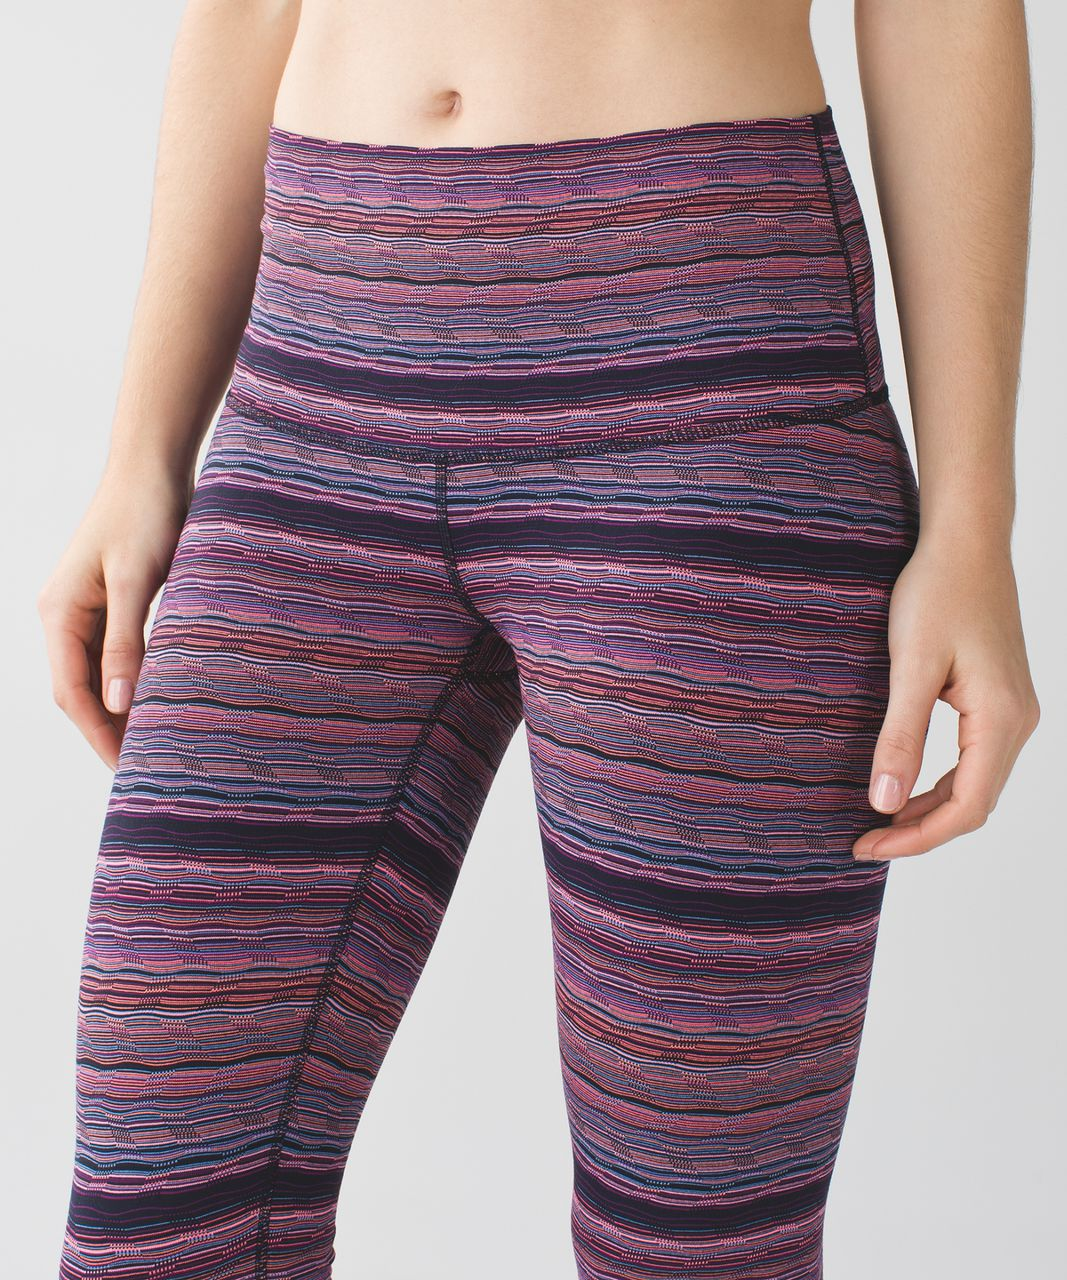 Lululemon Wunder Under Pant (Hi-Rise) - Space Dye Twist Naval Blue Very Light Flare